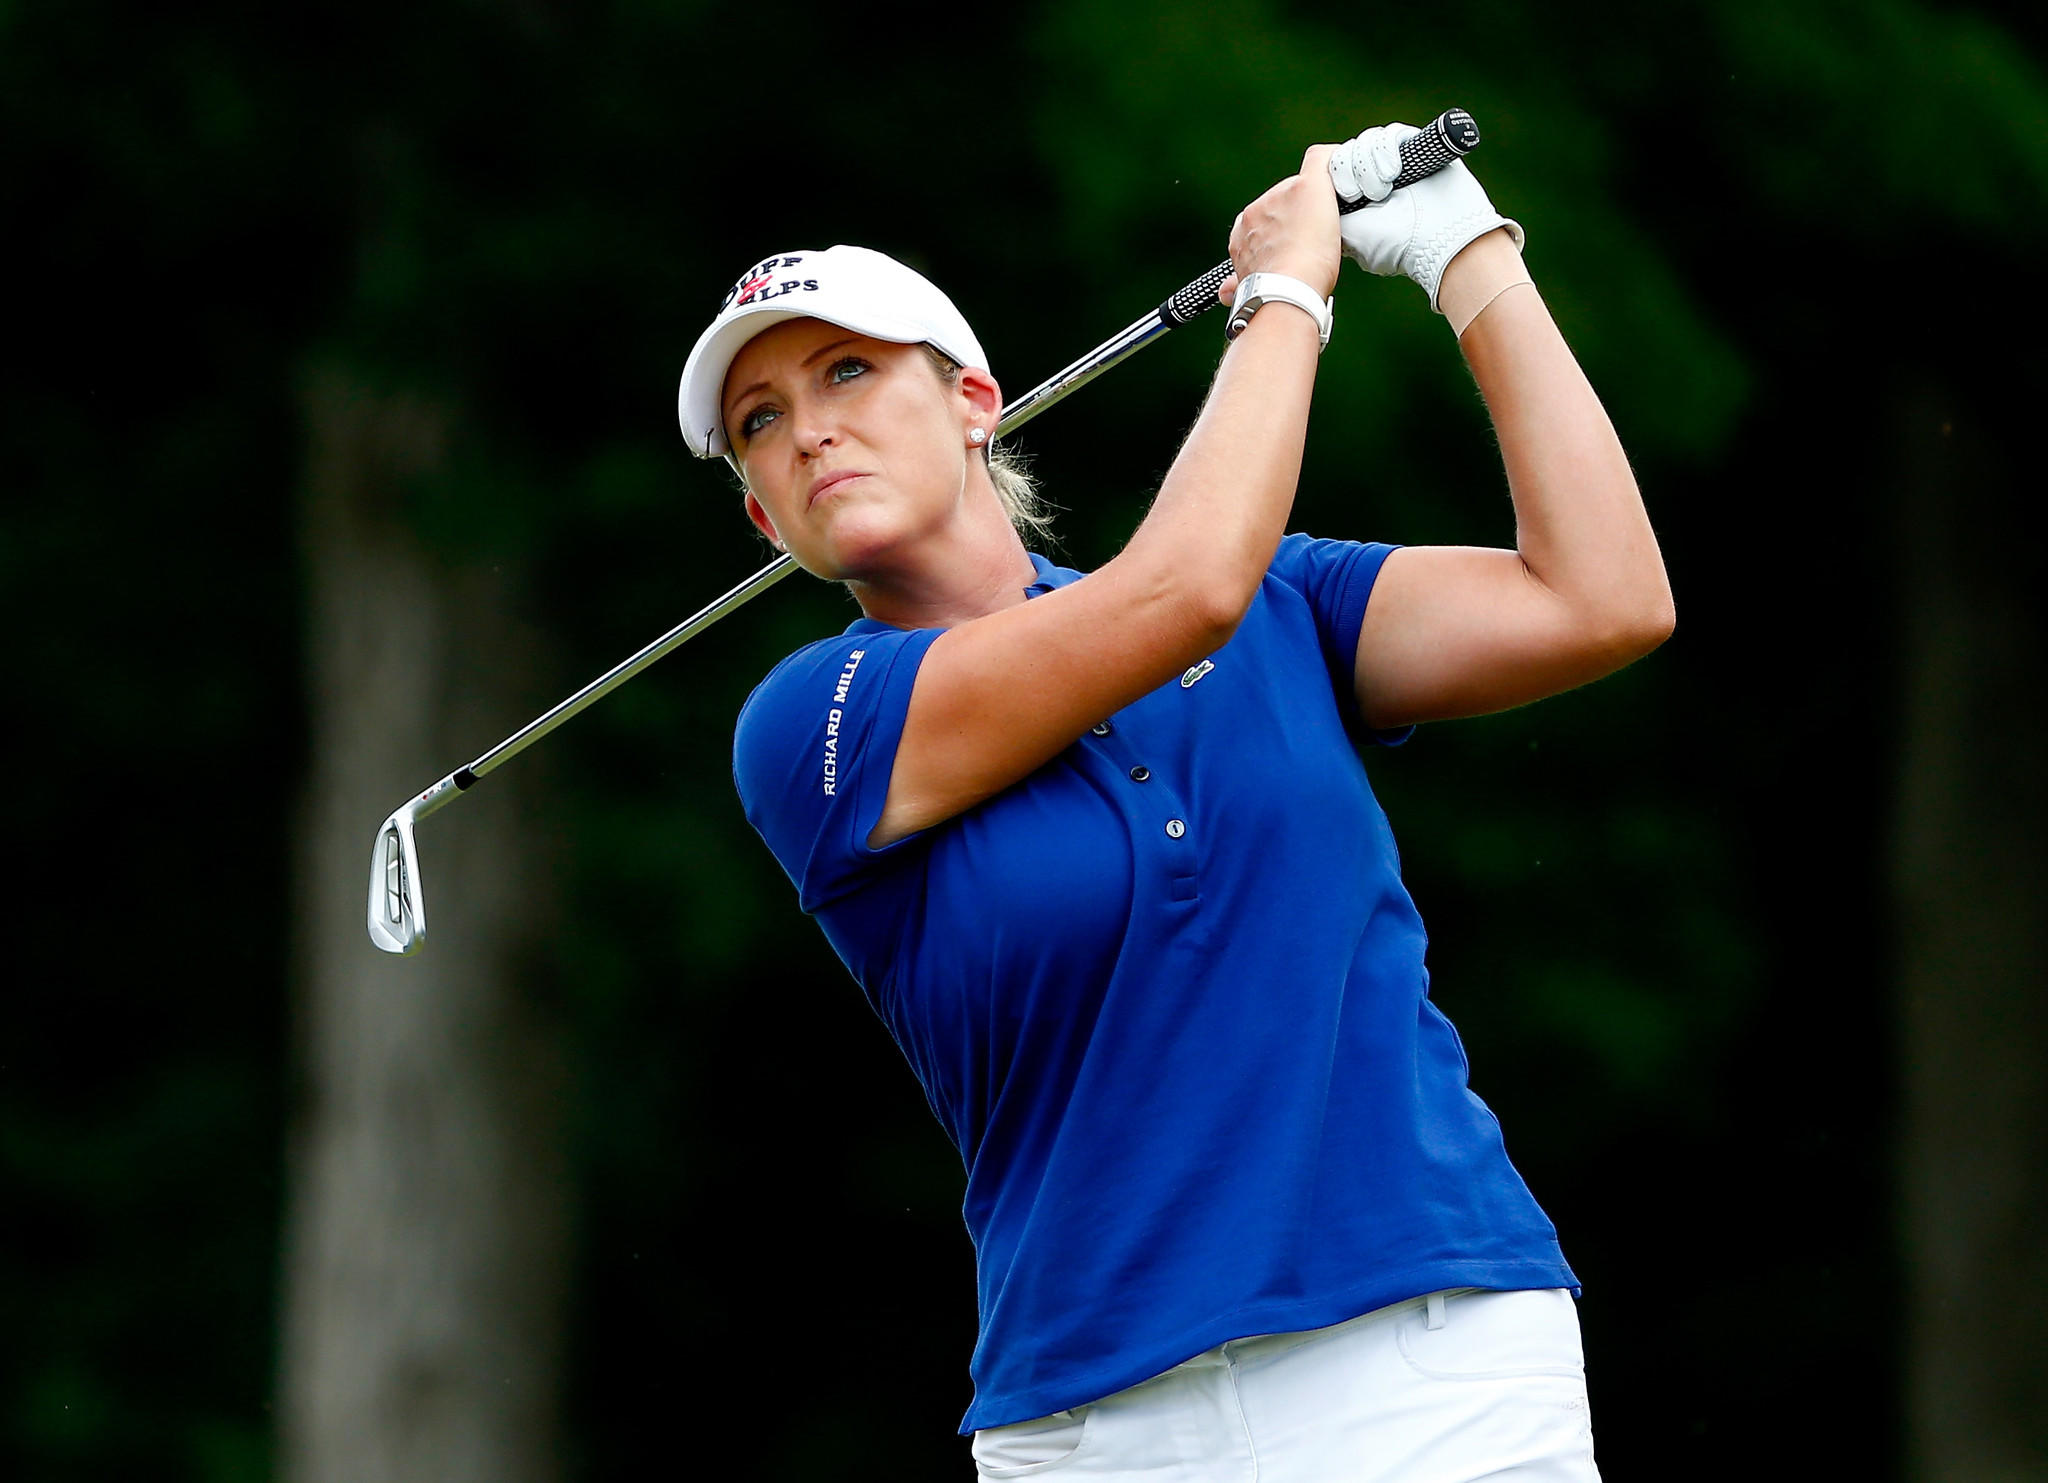 Cristie Kerr plays a shot during the final round of the Walmart NW Arkansas Championship last weekend.